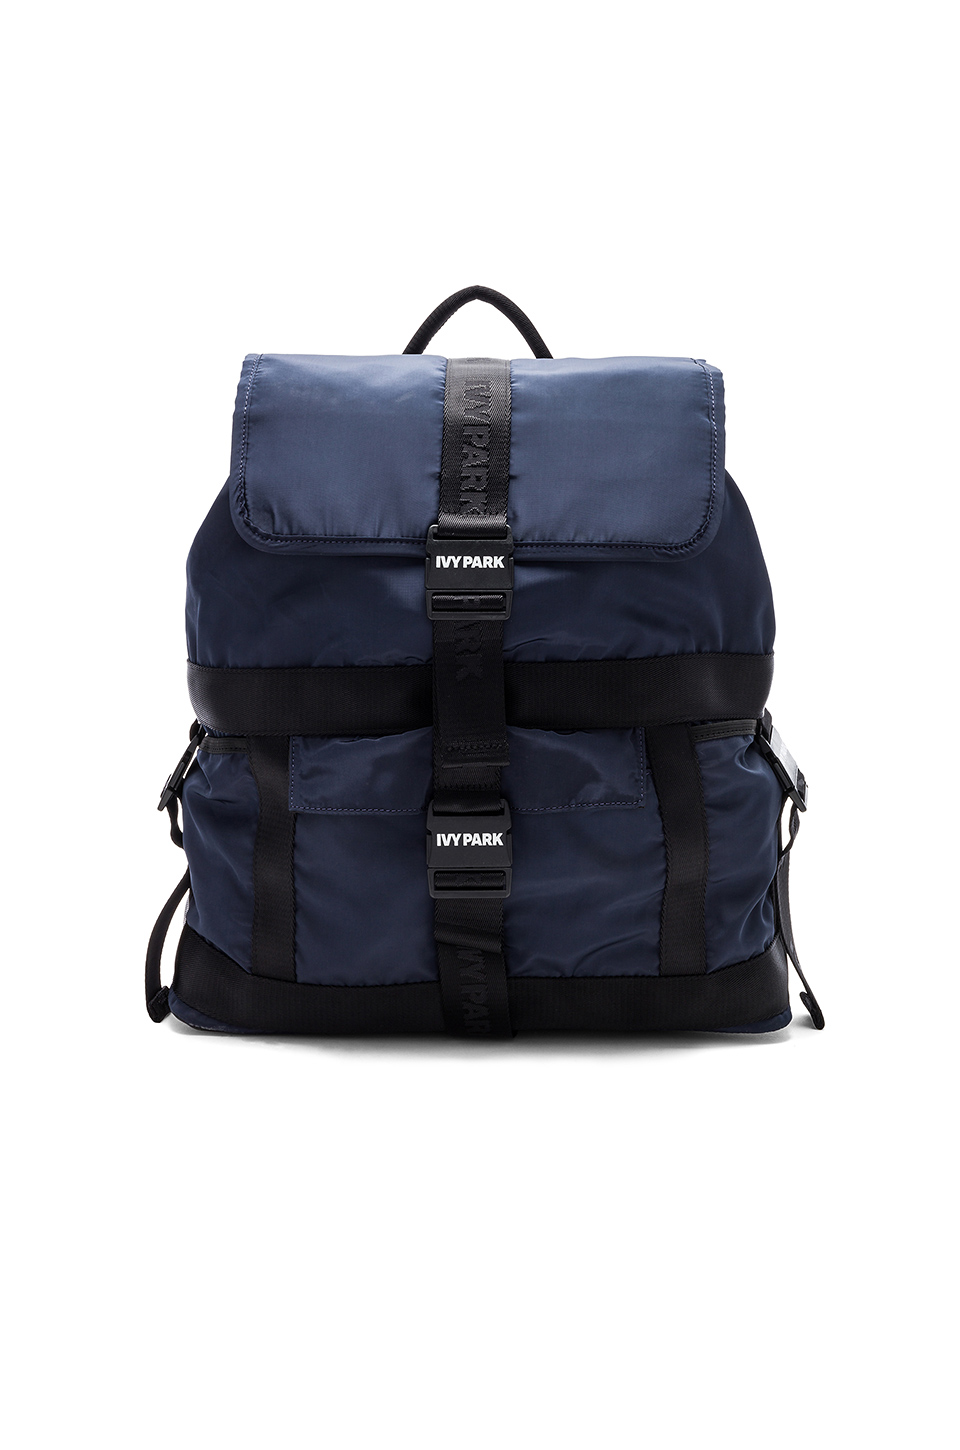 IVY PARK Parachute Back Pack in Ink